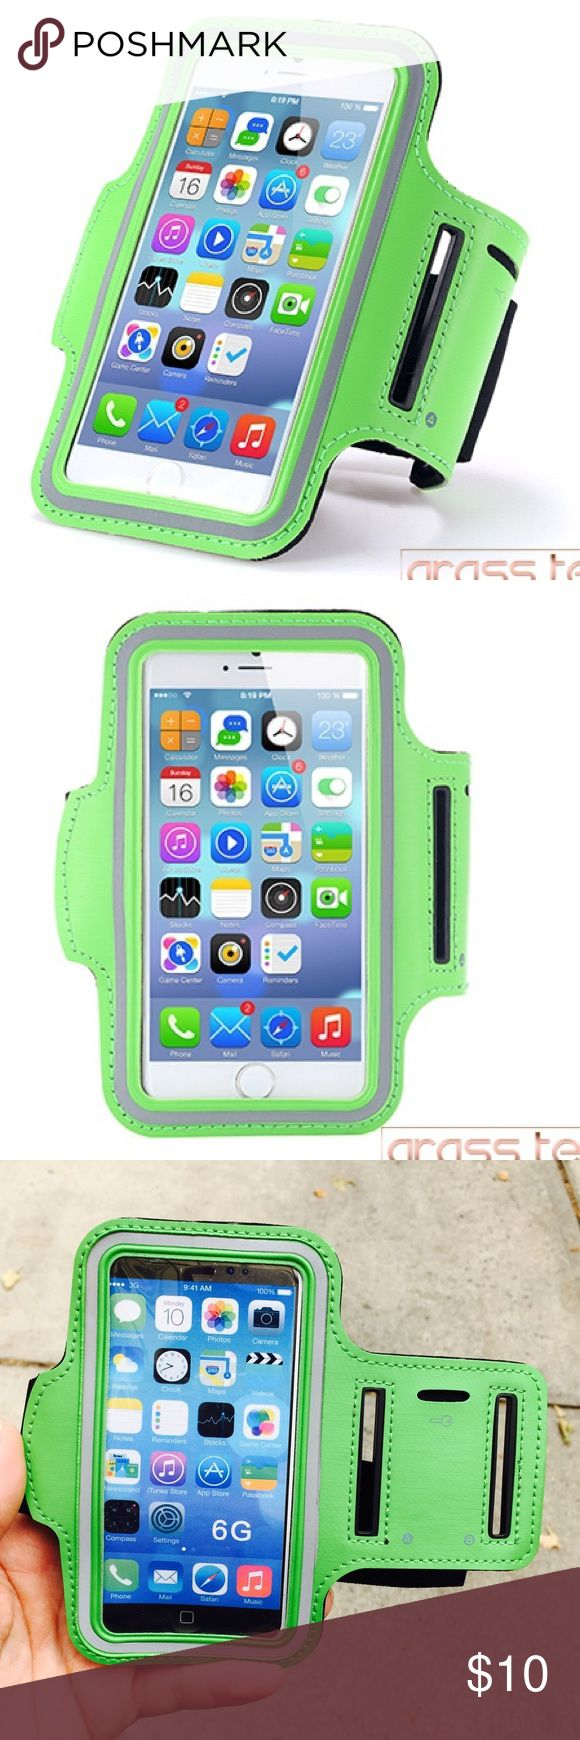 iPhone 7+/6+ Universal waterproof sport armband iPhone 7+/6+ Universal waterproof sport armband Stylish and convenient Universal Professional Sports Armband for running, fitness, cycling and all sports activities compatible for Apple iPhone 7 Plus, 6 Plus and 6s Plus, 5.5 inch.  Waterproof, sweat-proof and high quality.  Fast shipping  Green Accessories